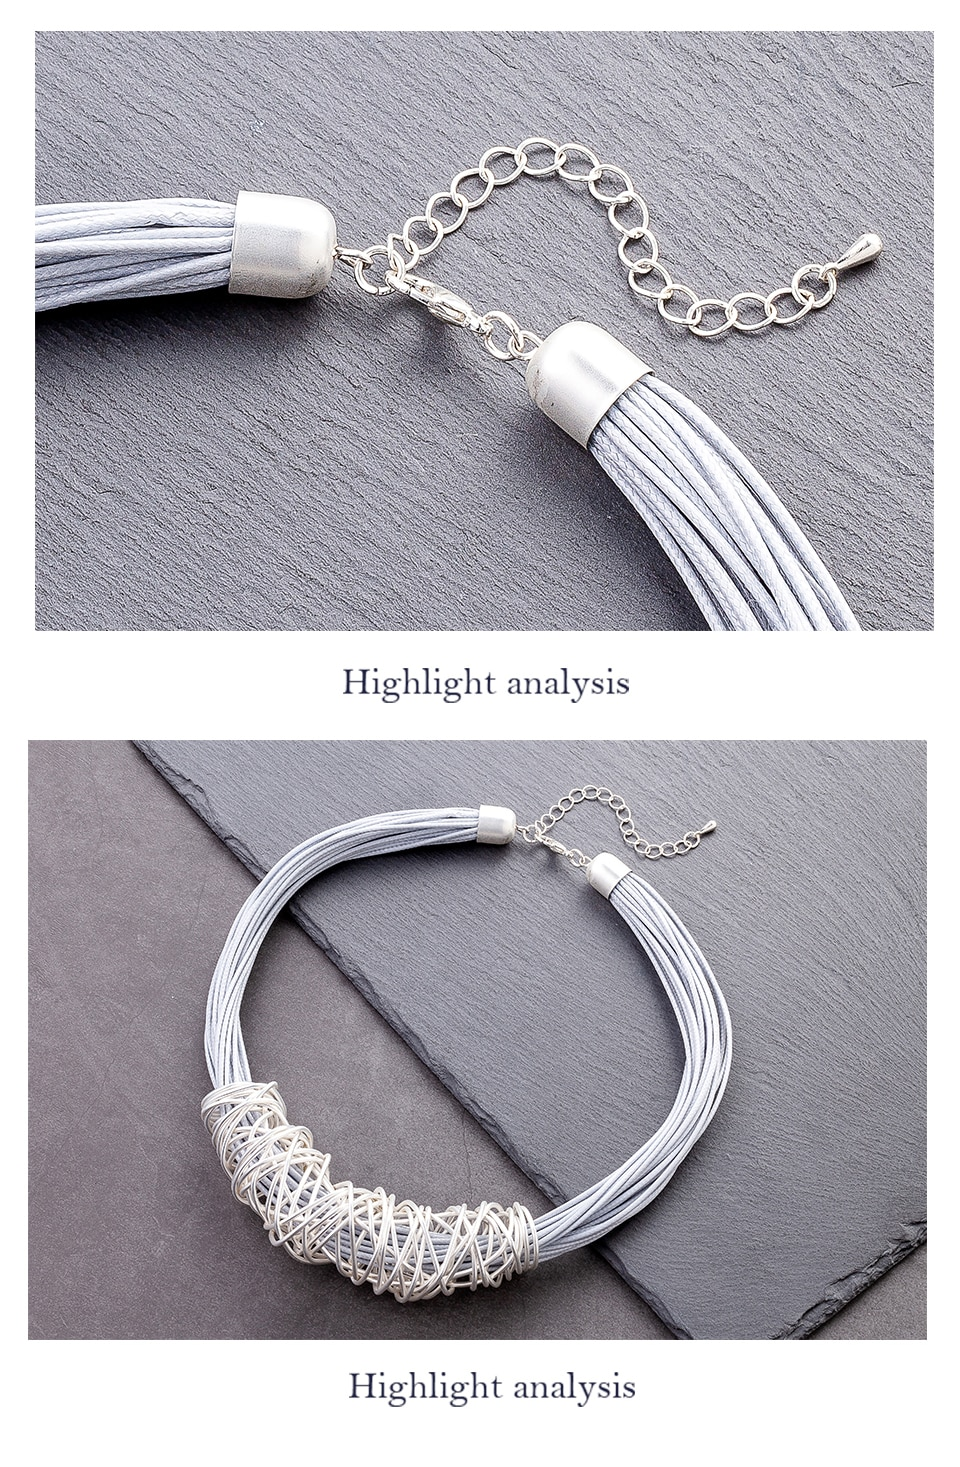 Trendy Chokers Rope Chain Silver Color Simple Neckcklaces Gifts On The Neck For Women's Jewelry  Suspension Decoration Pendants